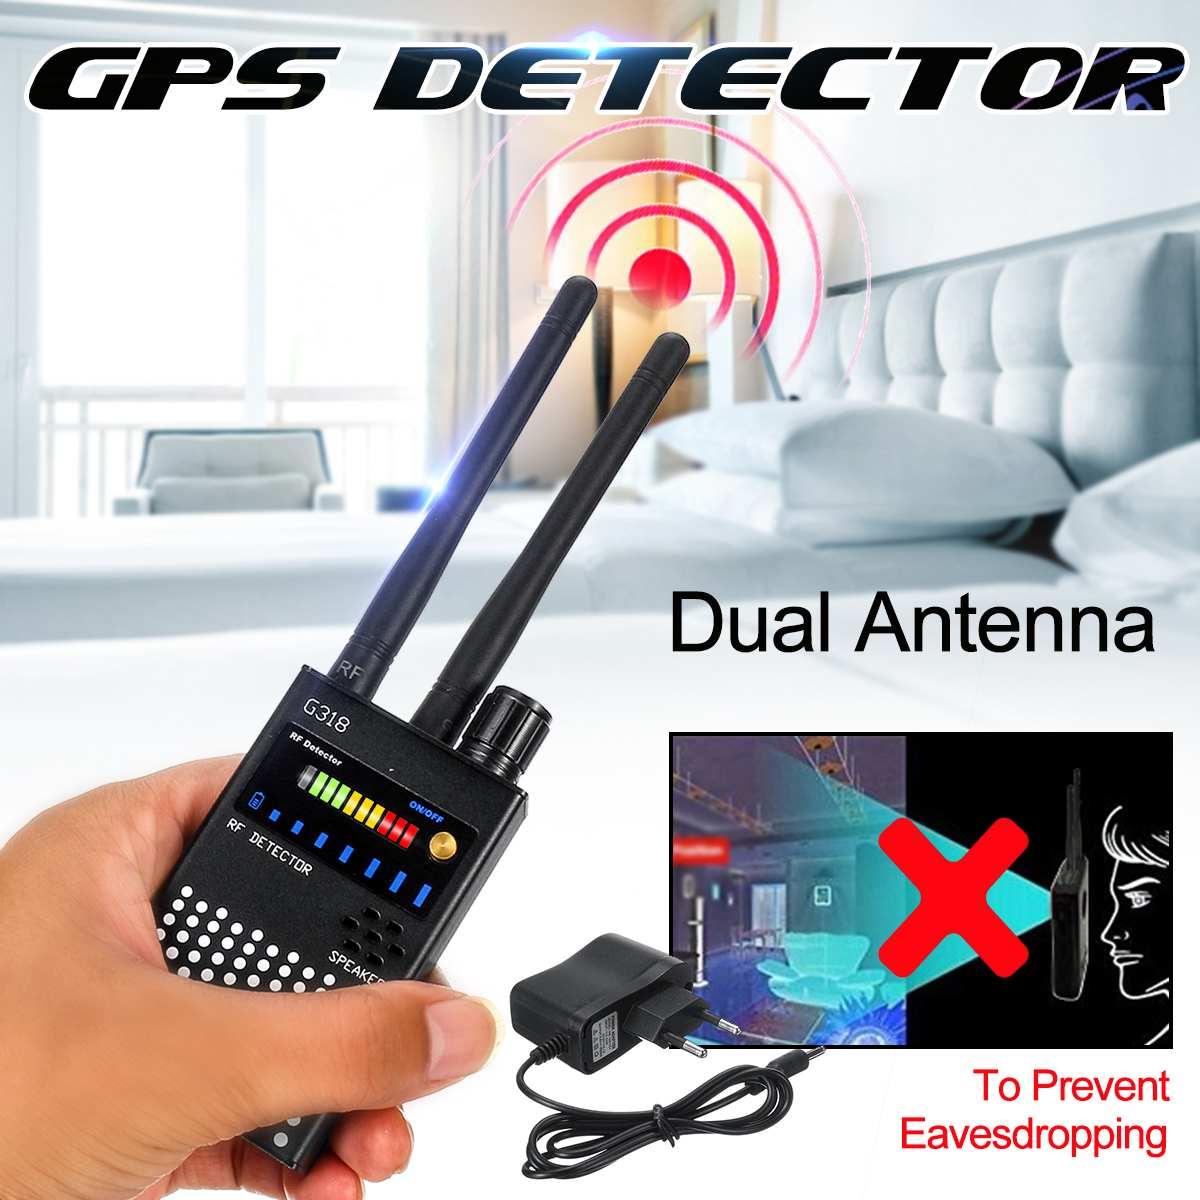 G318 Anti-Spy GPS Wireless Signal Automatic Detector Finder Racker Frequency Scan Sweeper Protect Security